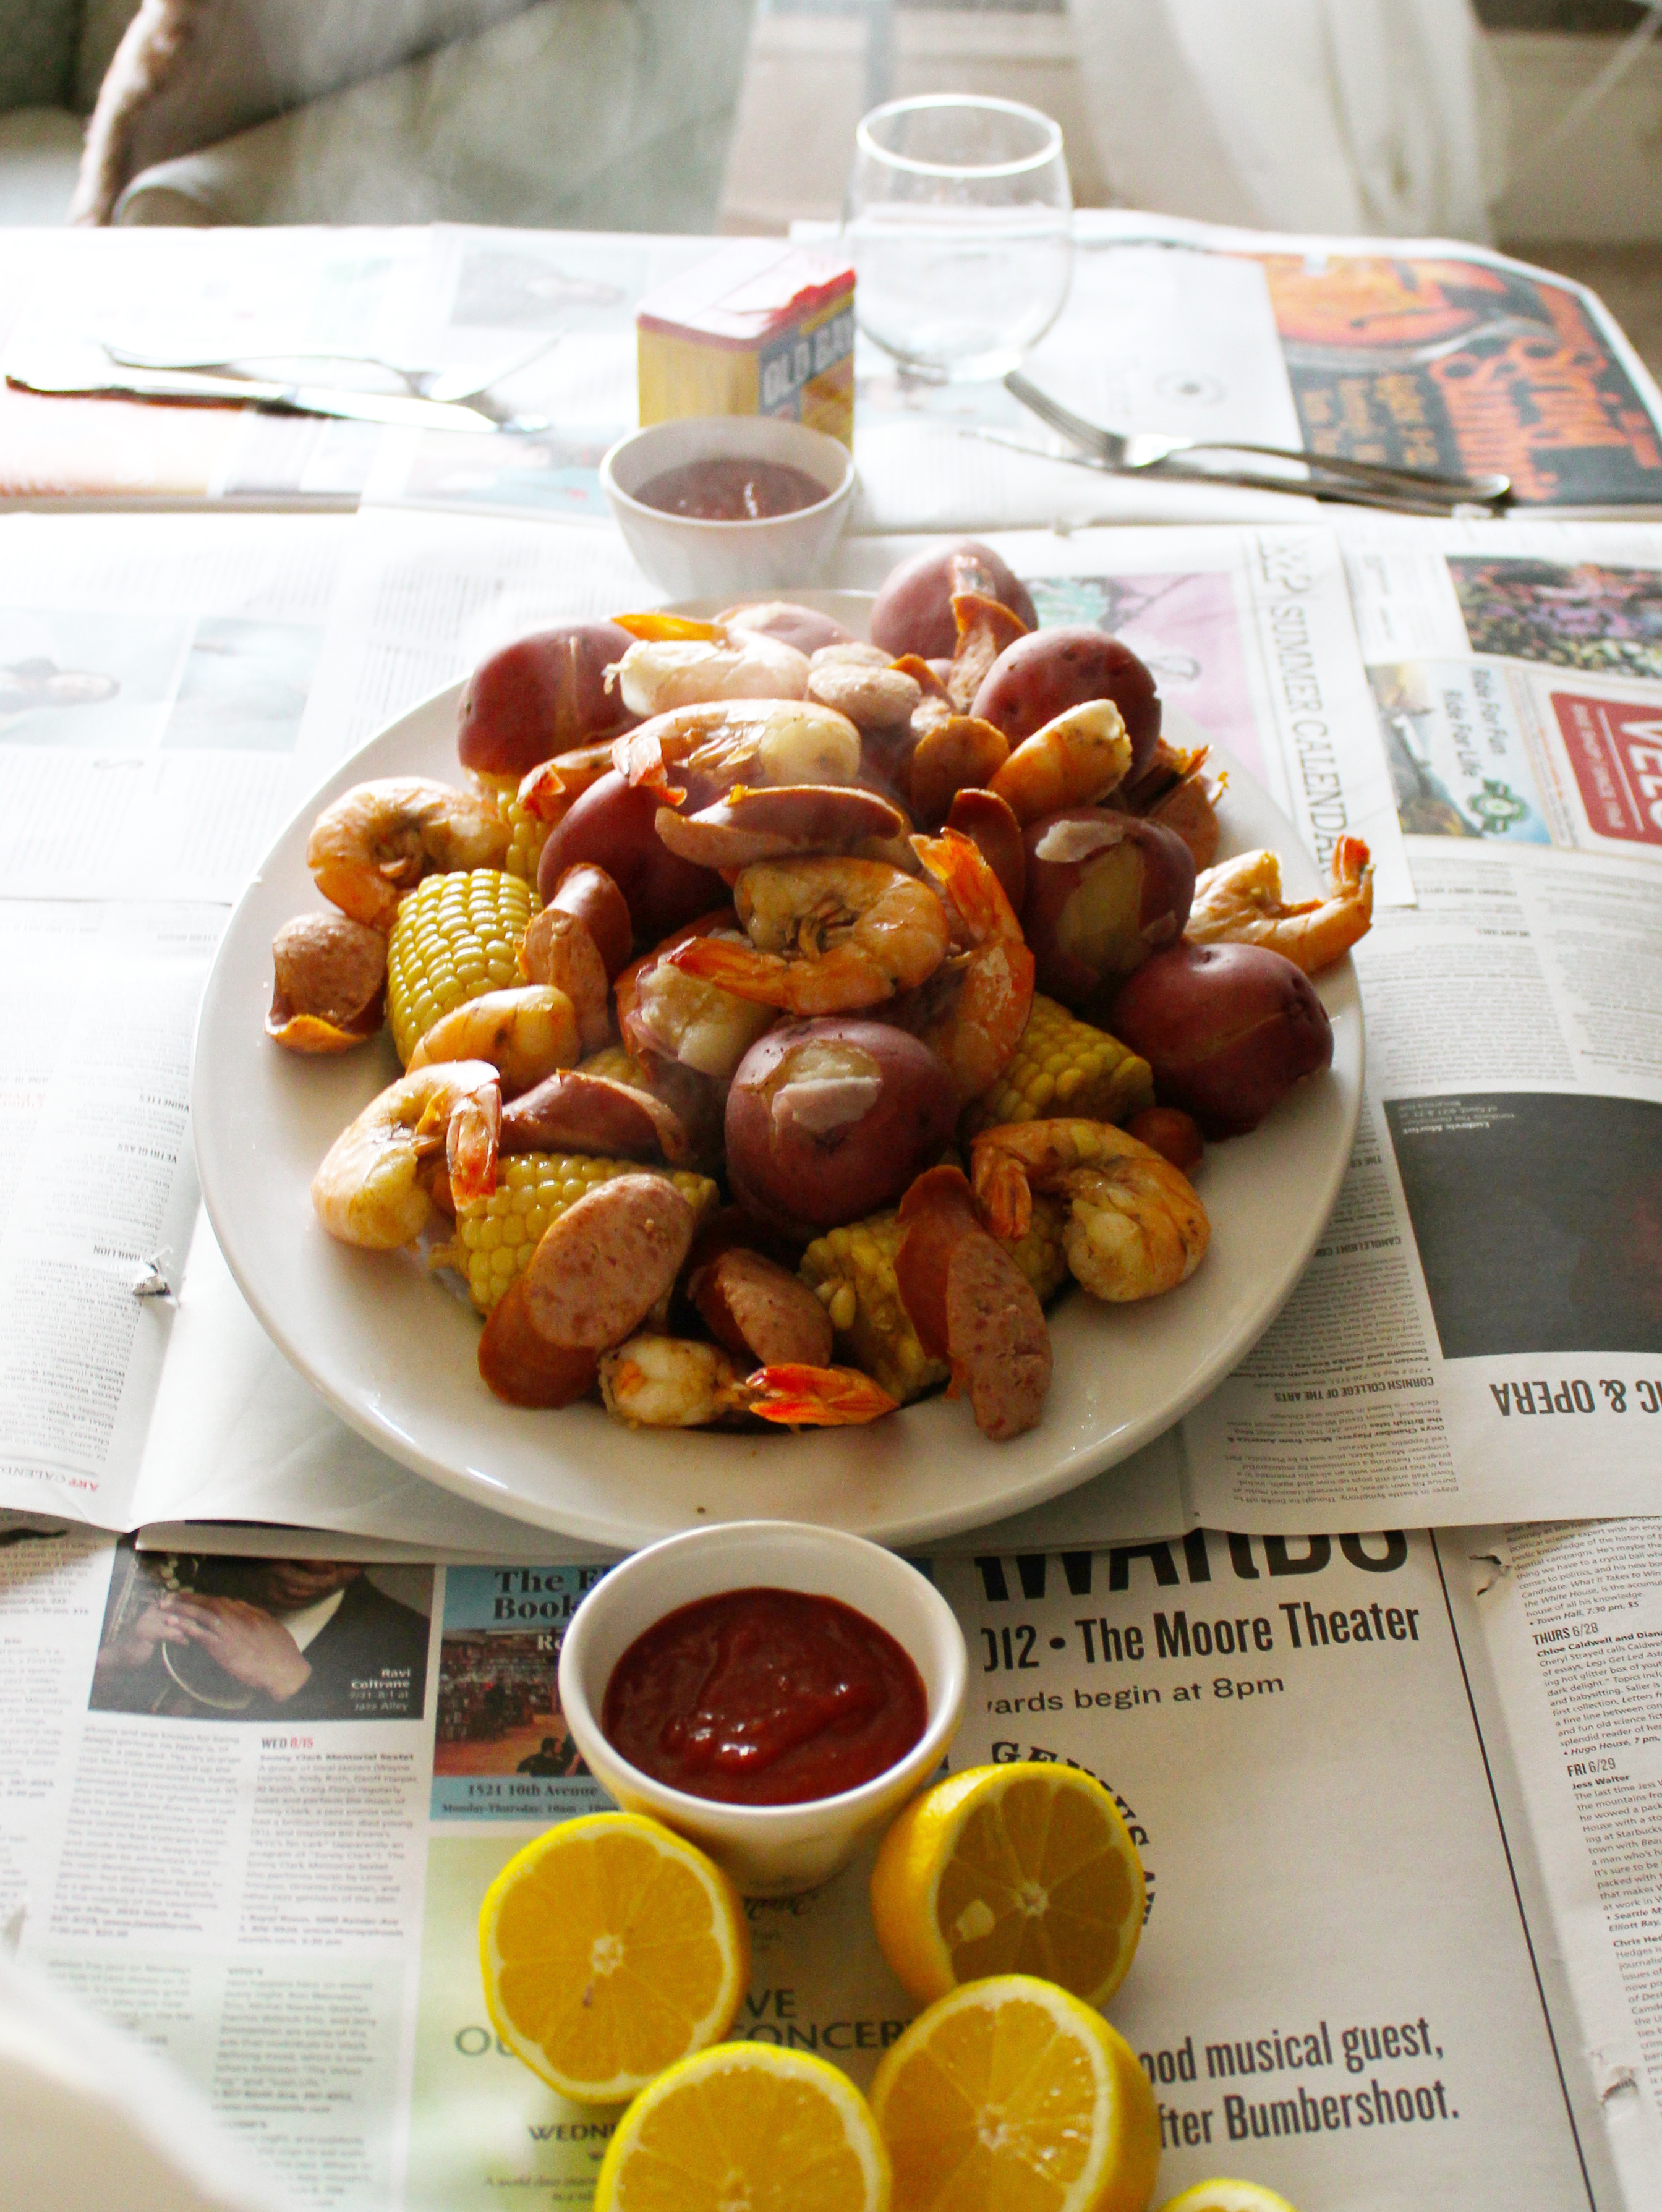 Says summer to me like a lowcountry boil also known as frogmore stew